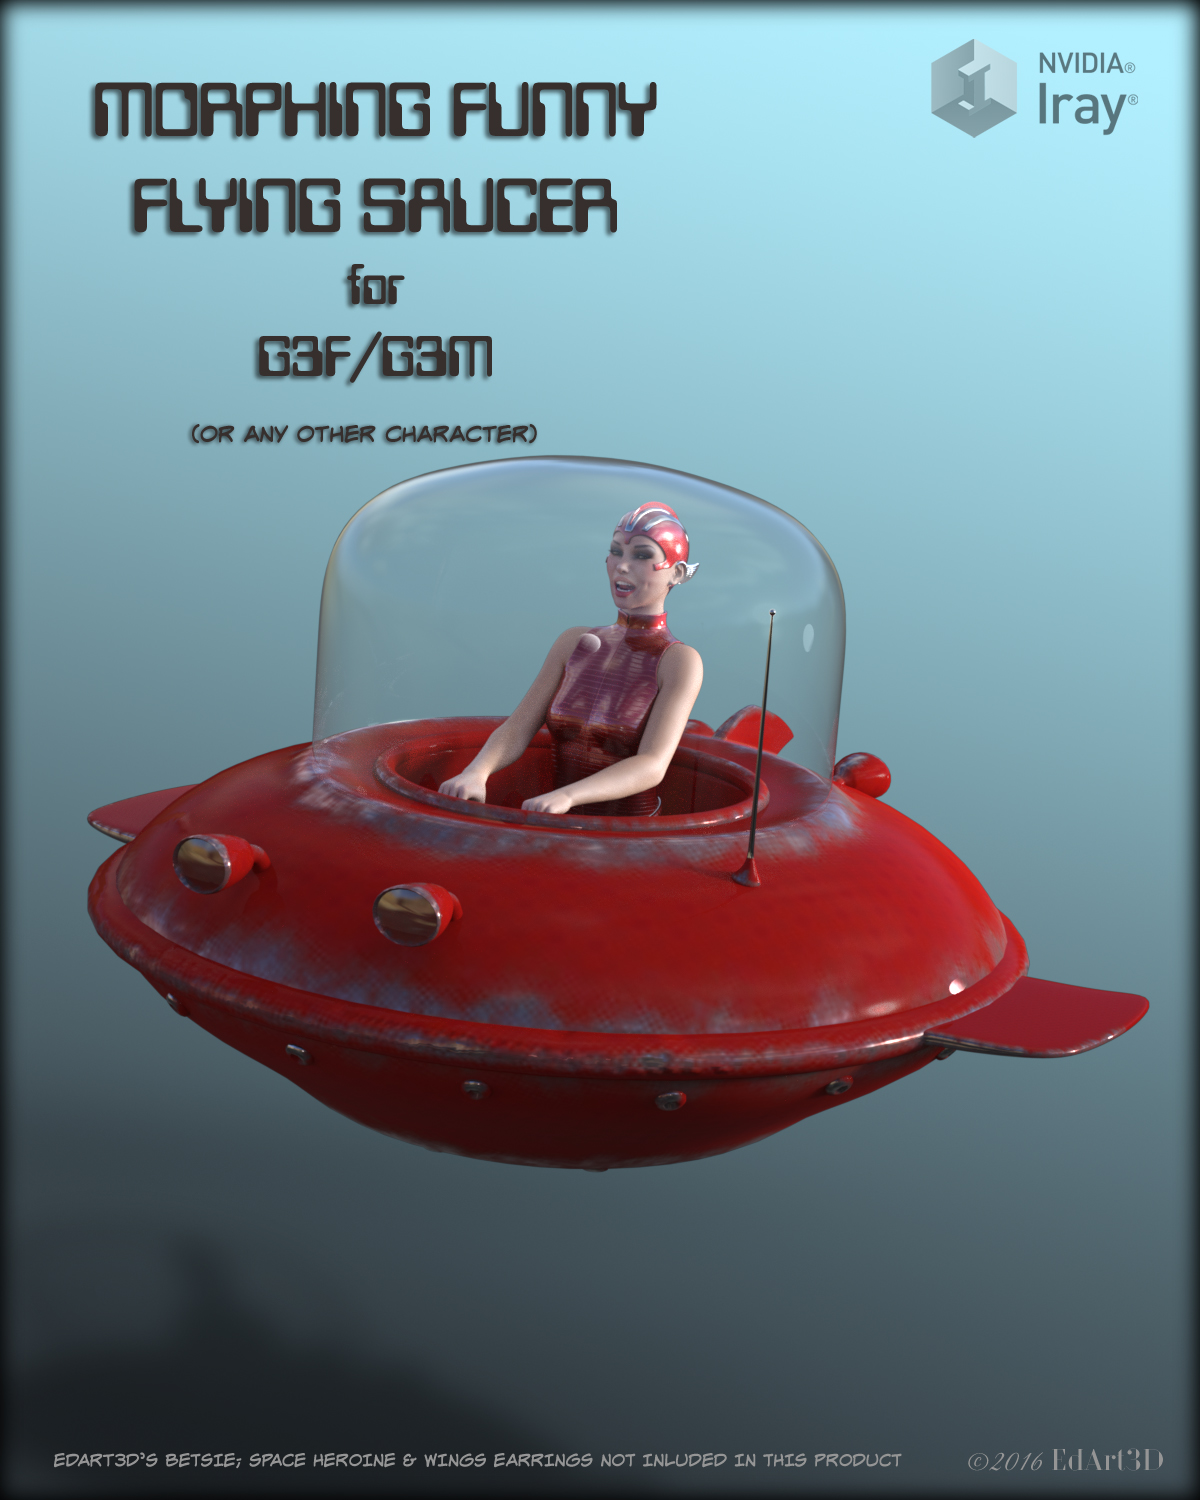 Morphing Funny Flying Saucer for G3F/G3M